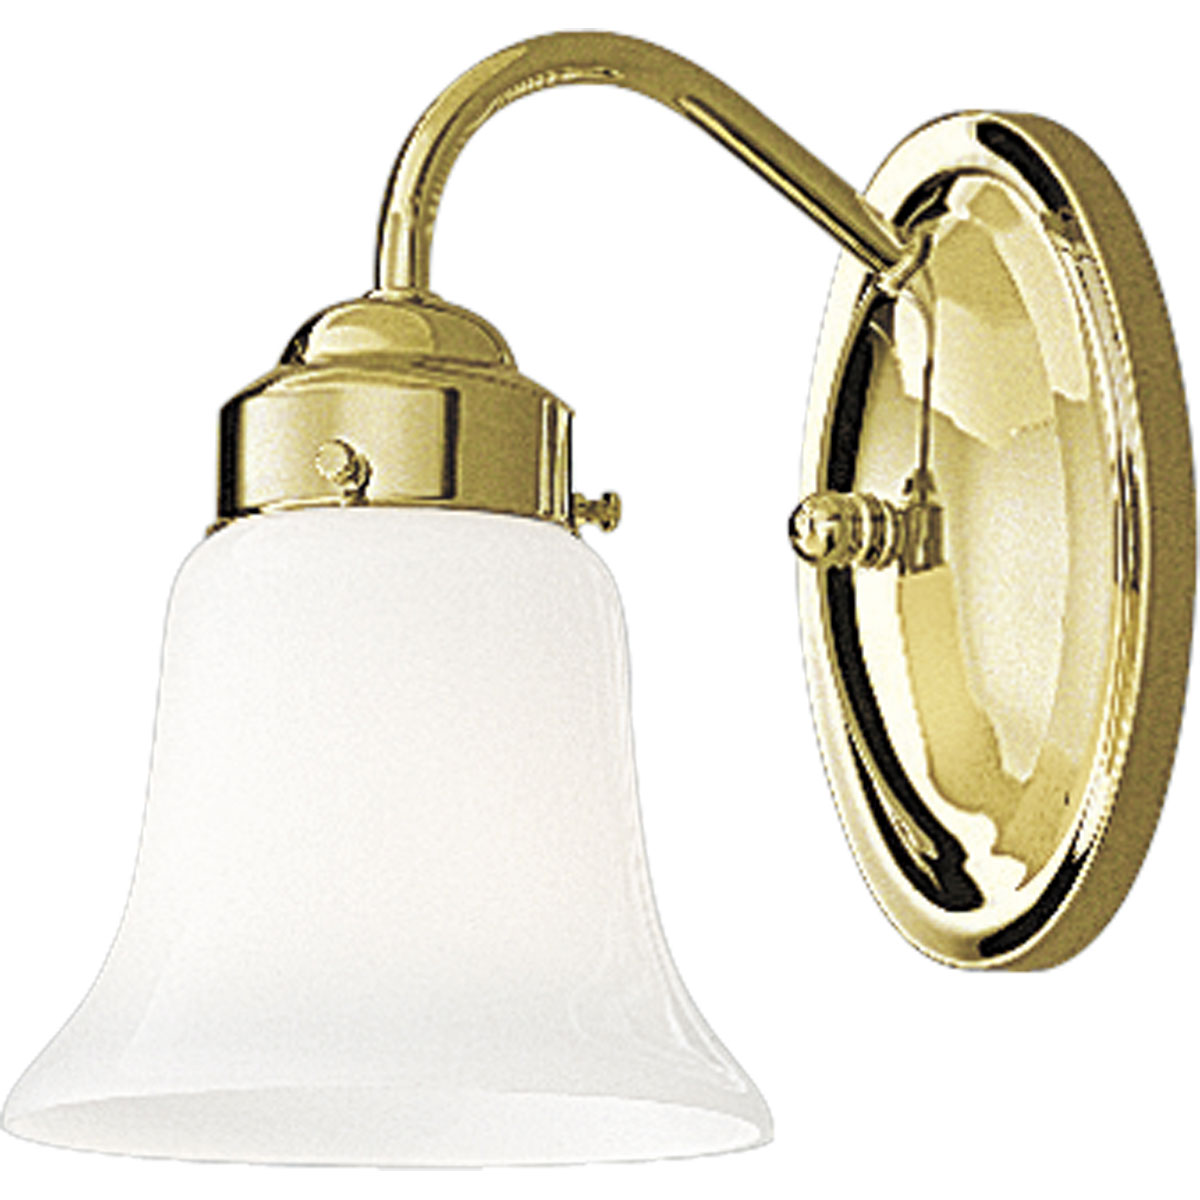 Bath Sconces Traditional polished brass wall sconces, polished brass wall lights, wall